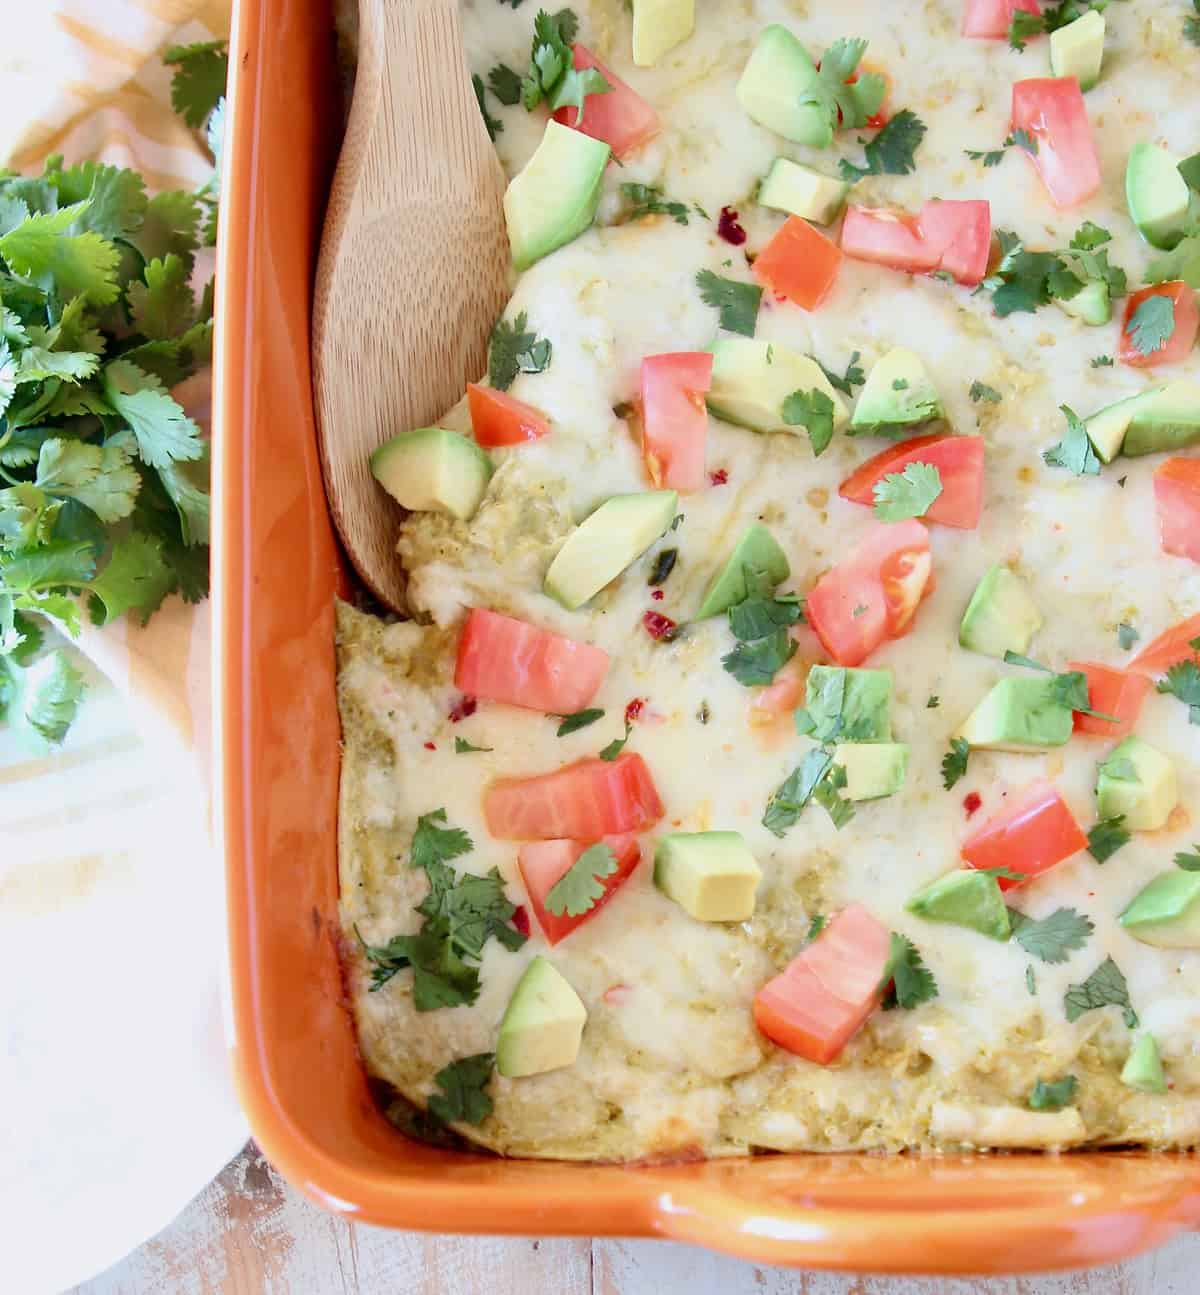 Chicken enchilada casserole topped with diced tomatoes and avocado